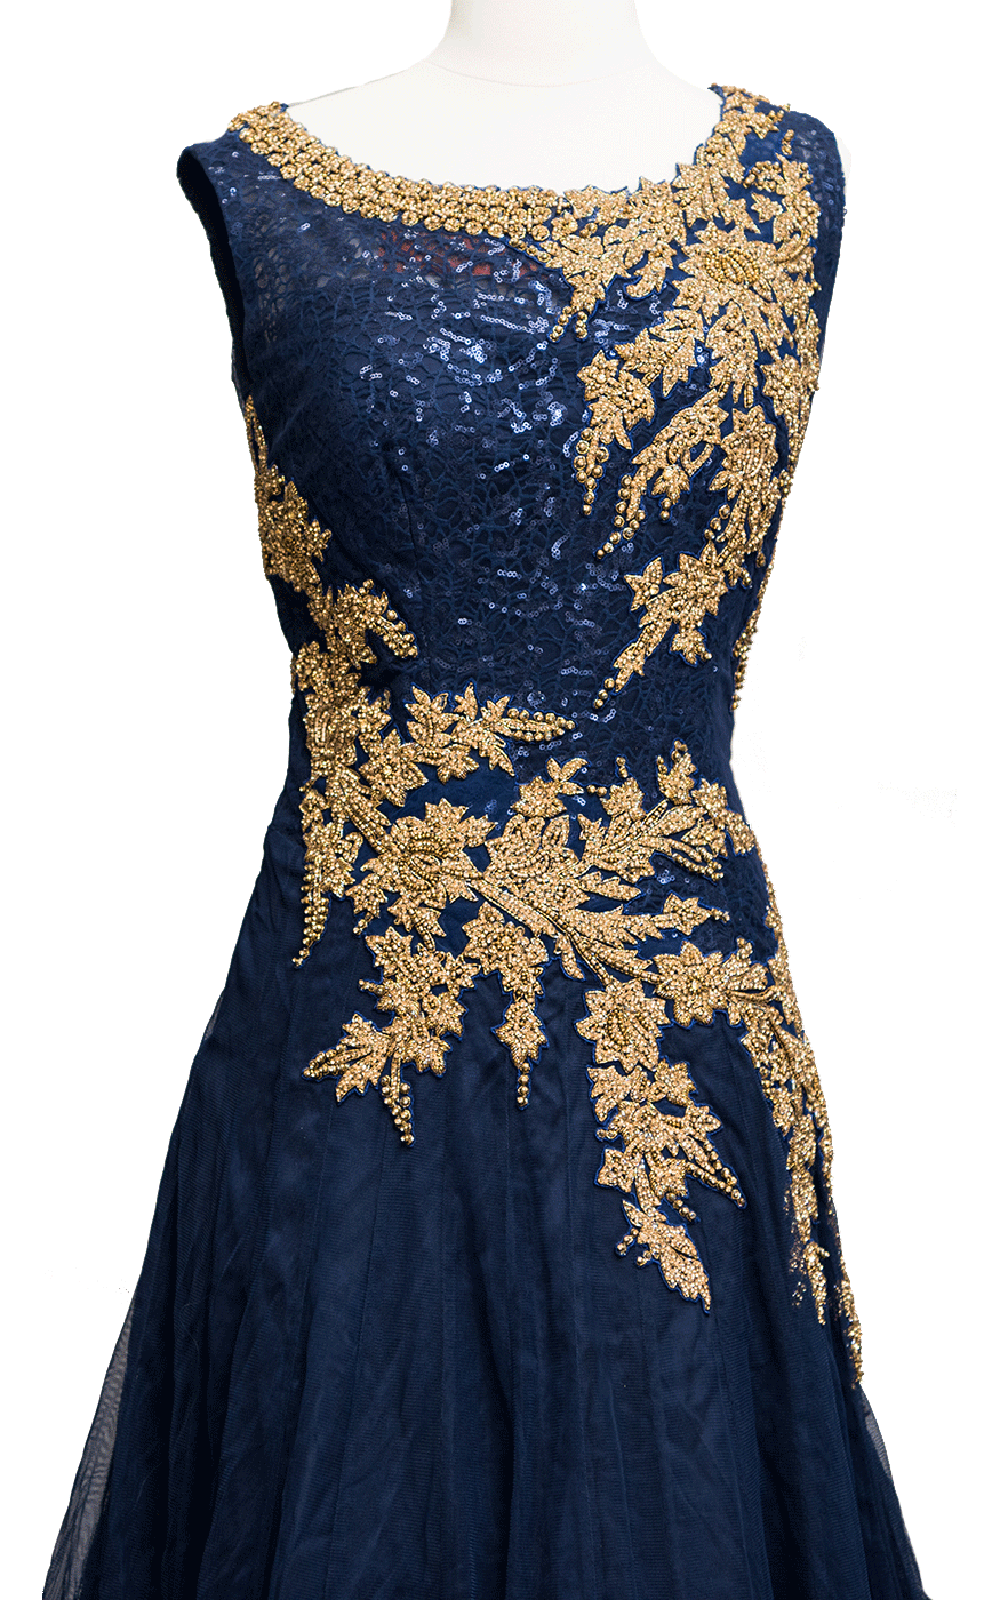 Petrol Blue Sequins Gown